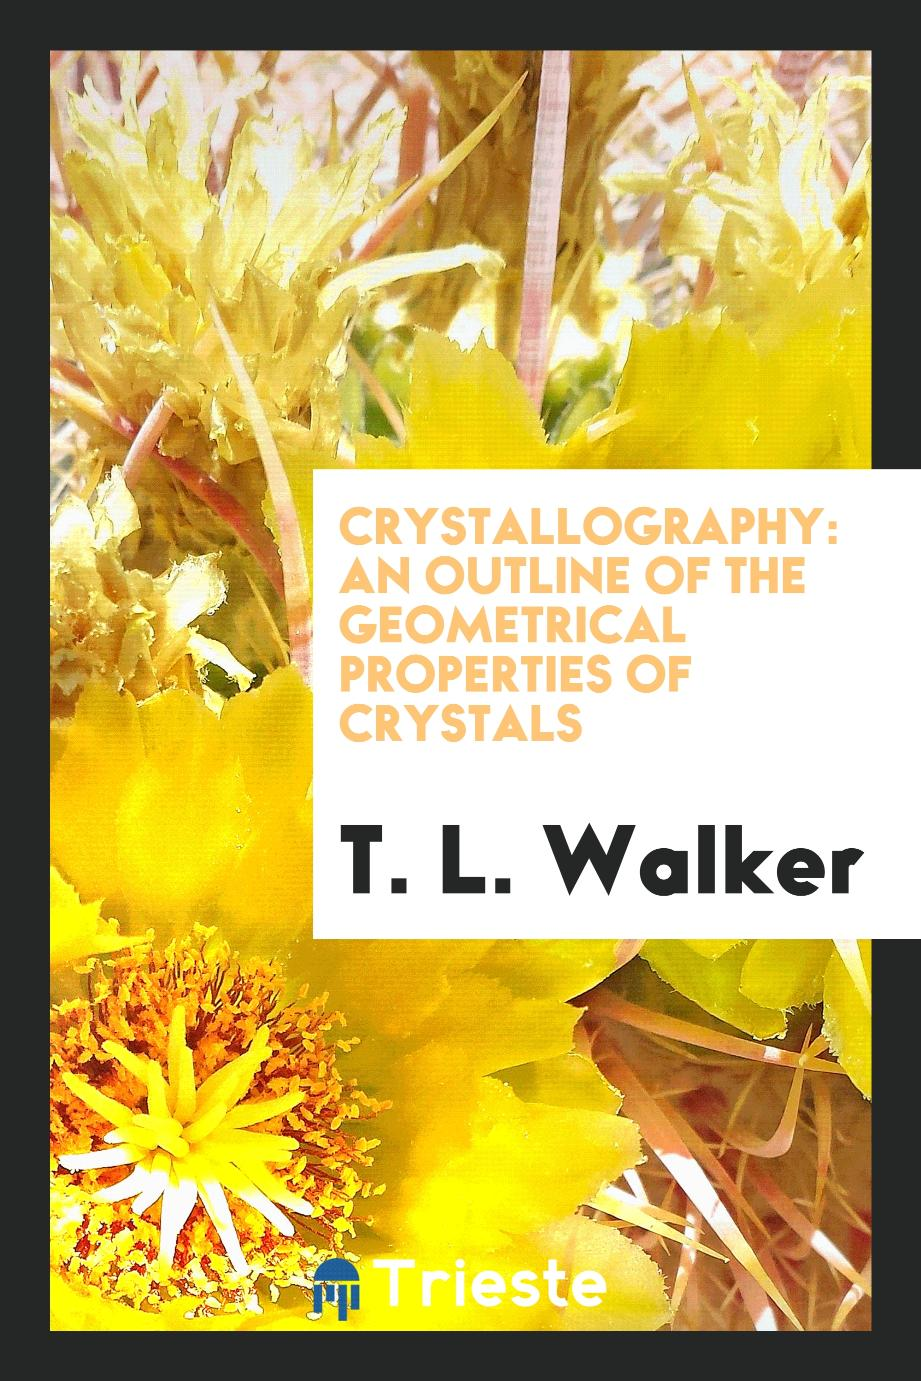 Crystallography: An Outline of the Geometrical Properties of Crystals